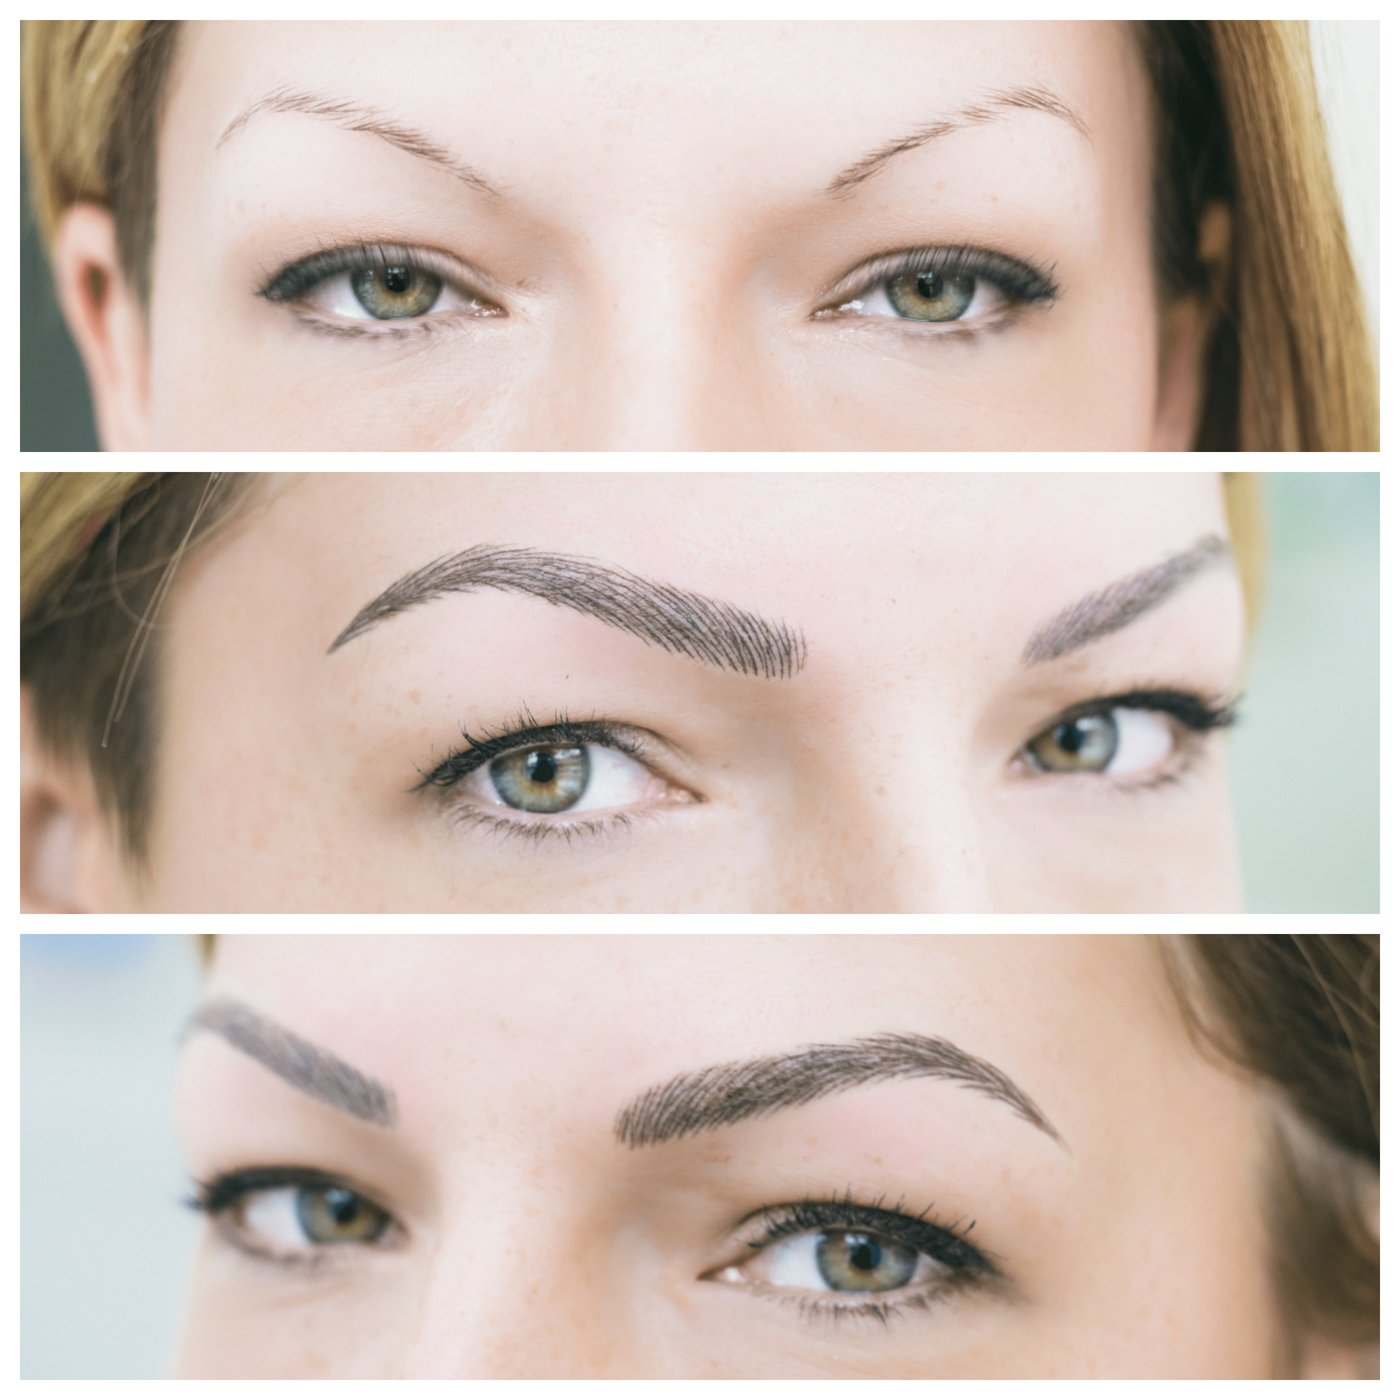 rsz_eyebrows_1